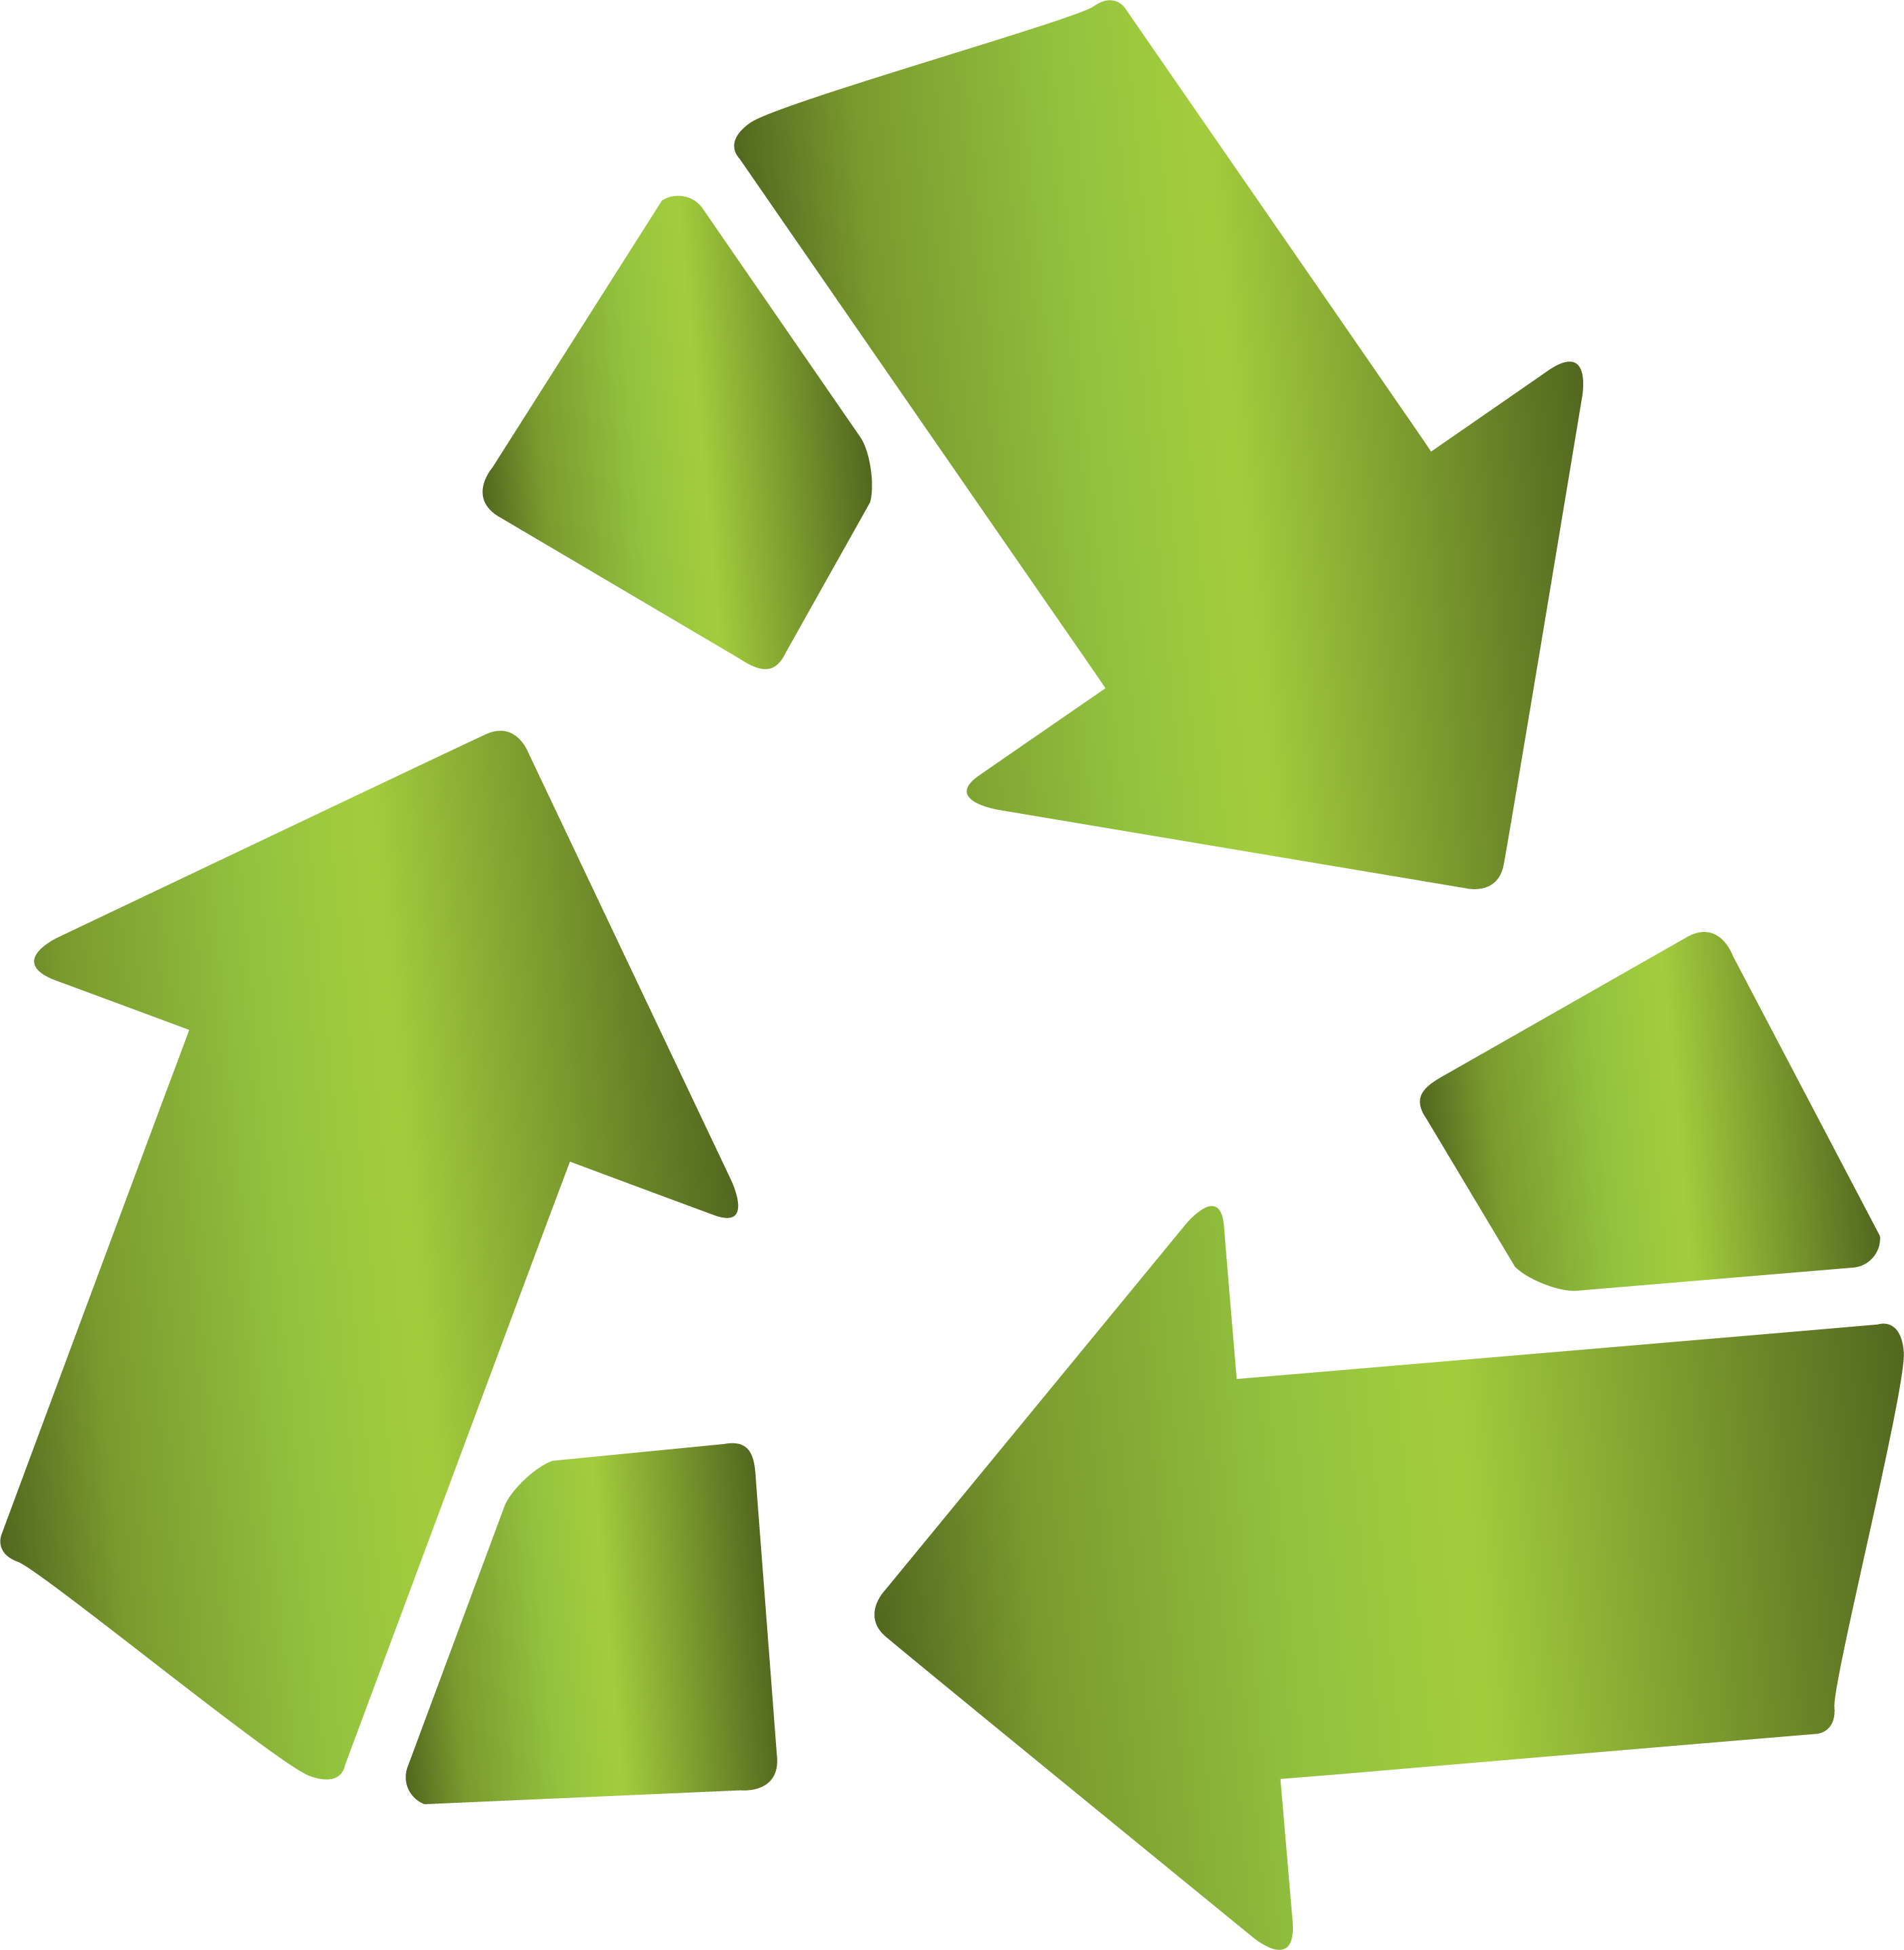 Presentation labels png. Recycling symbol energy recycle